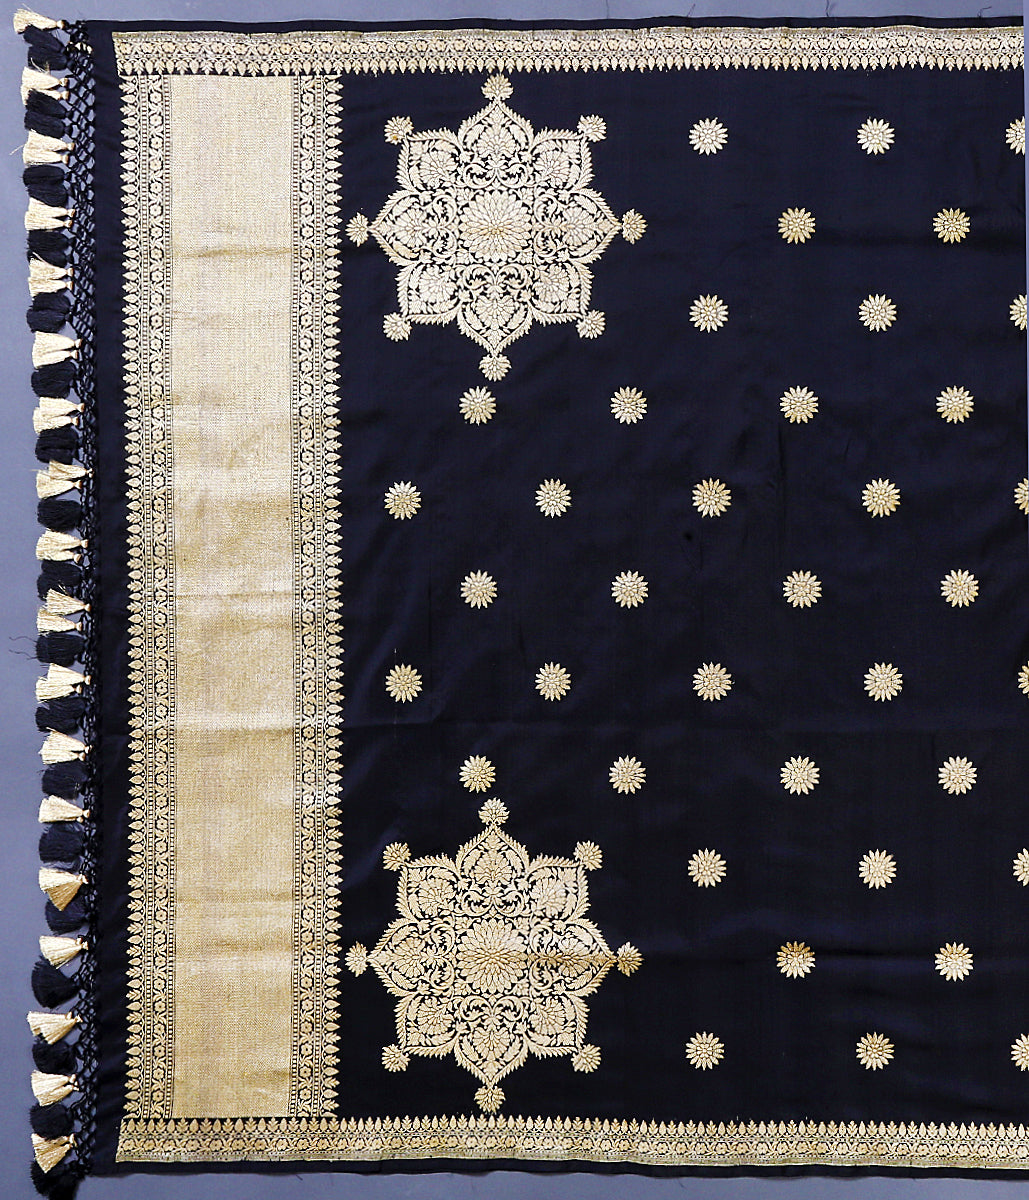 Handwoven black katan silk dupatta with large floral motifs woven in kadhwa weave